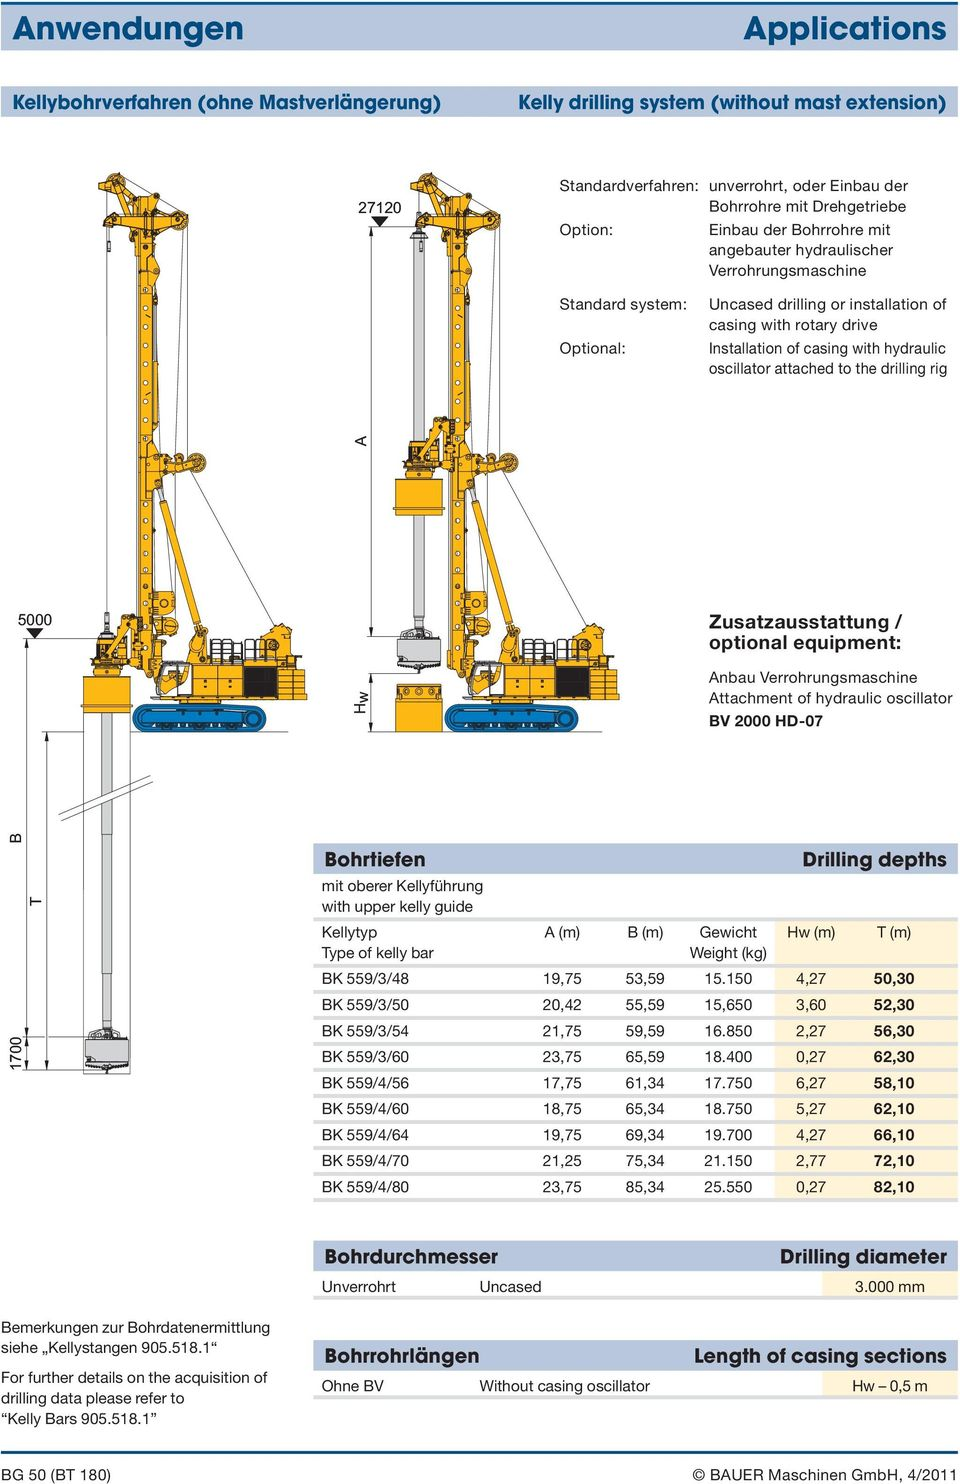 der Bohrrohre mit Drehgetriebe Option: Einbau der Bohrrohre mit angebauter hydraulischer Verrohrungsmaschine 2712 Standard system: A Optional: Uncased drilling or installation of casing with rotary